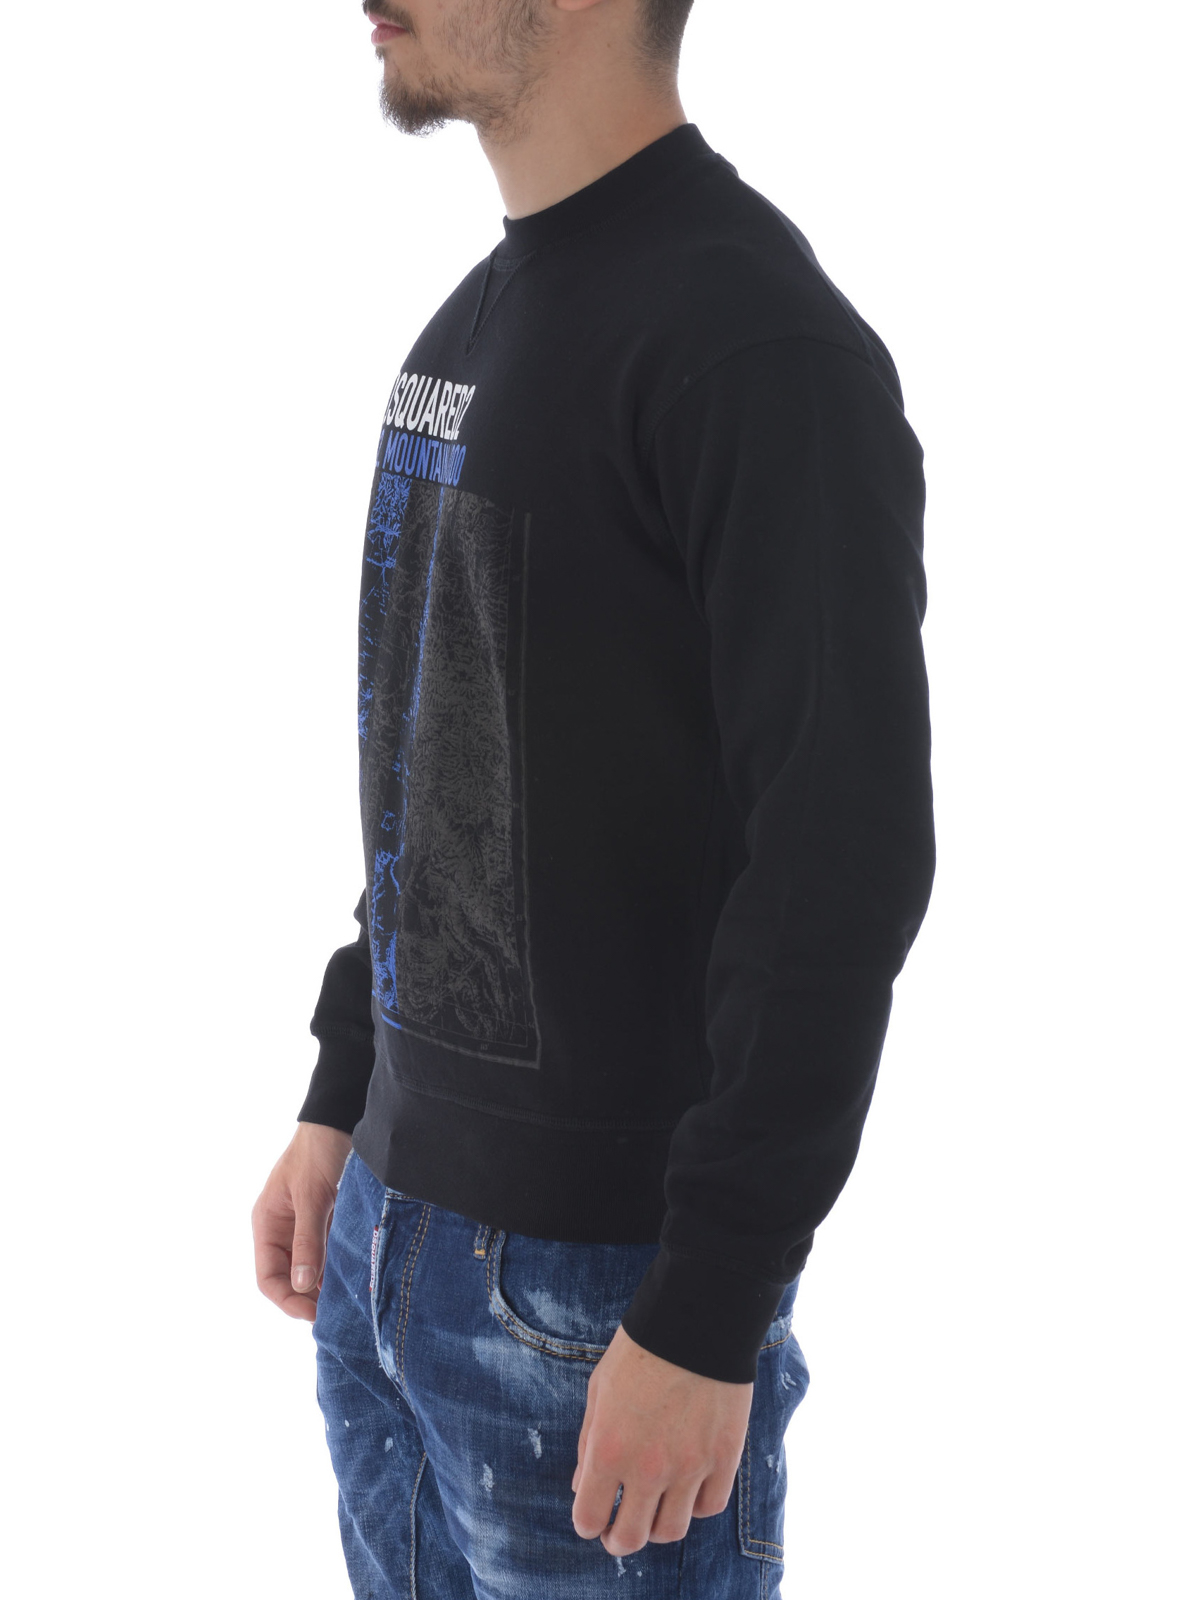 Printed cotton sweatshirt by Dsquared2 - Sweatshirts & Sweaters ...